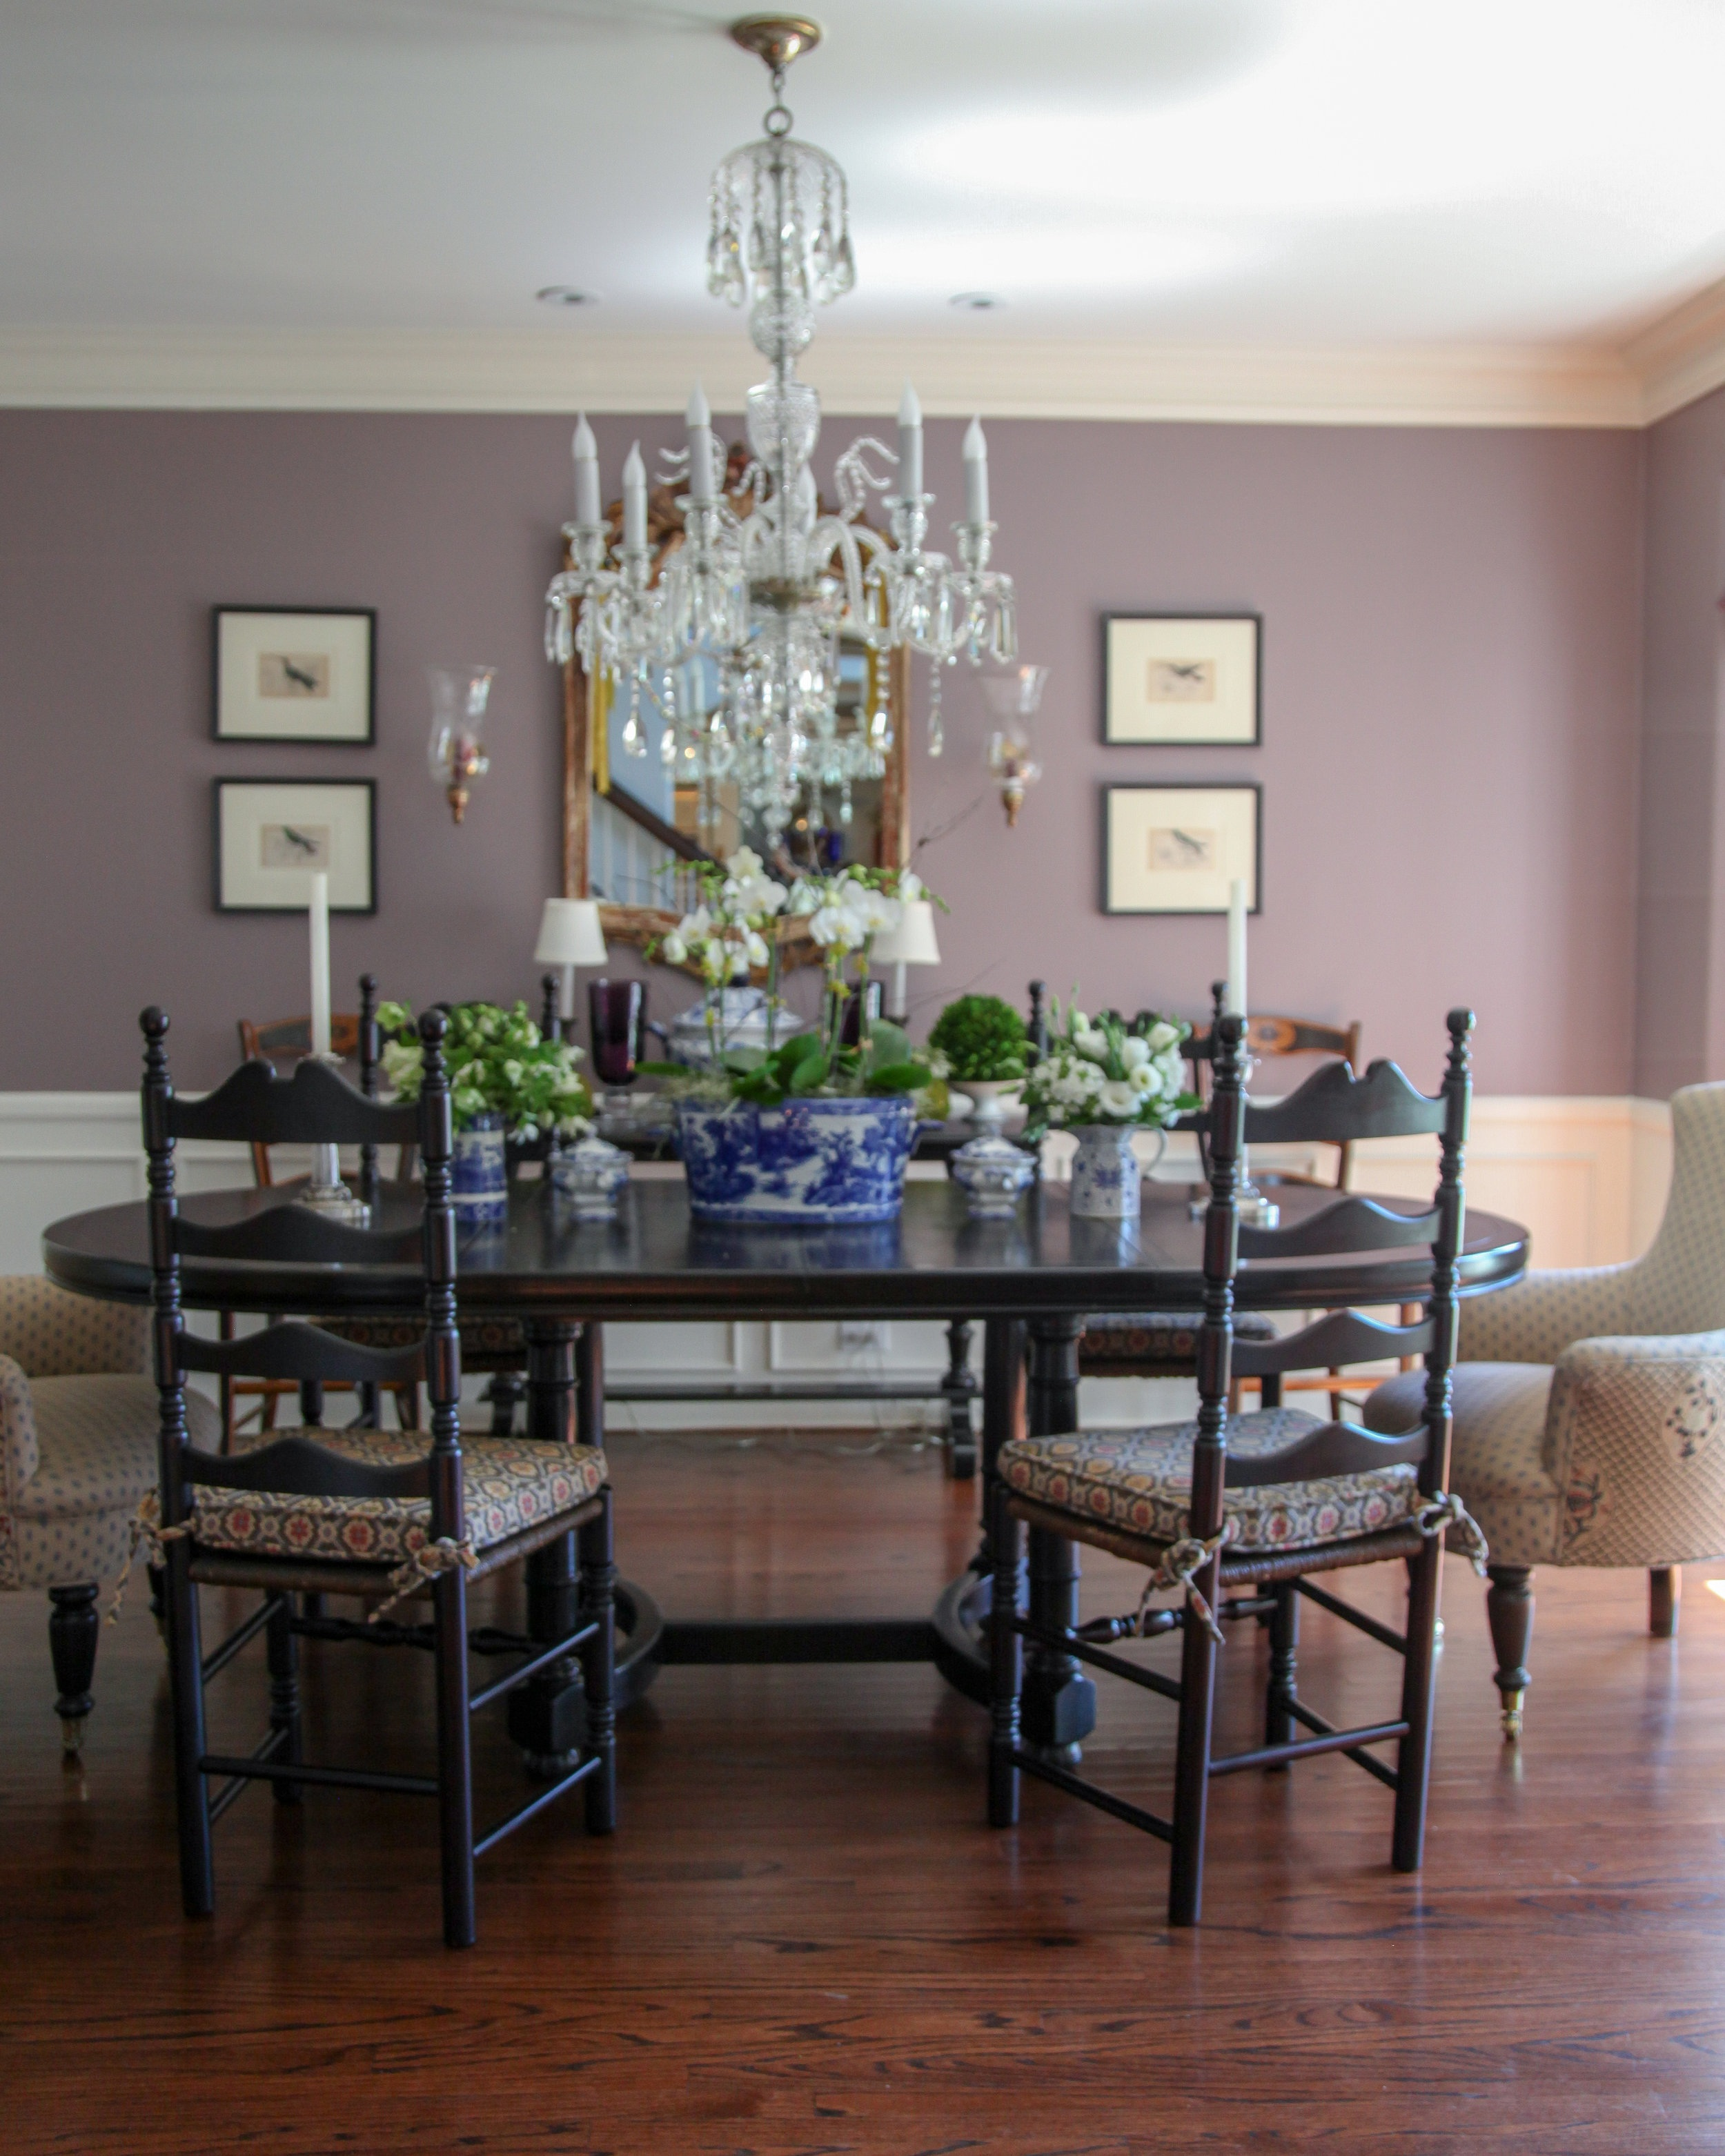 These walls are painted  Benjamin Moore's Wet Concrete . Blues and natural wood tones marry well with this dark mauve color.